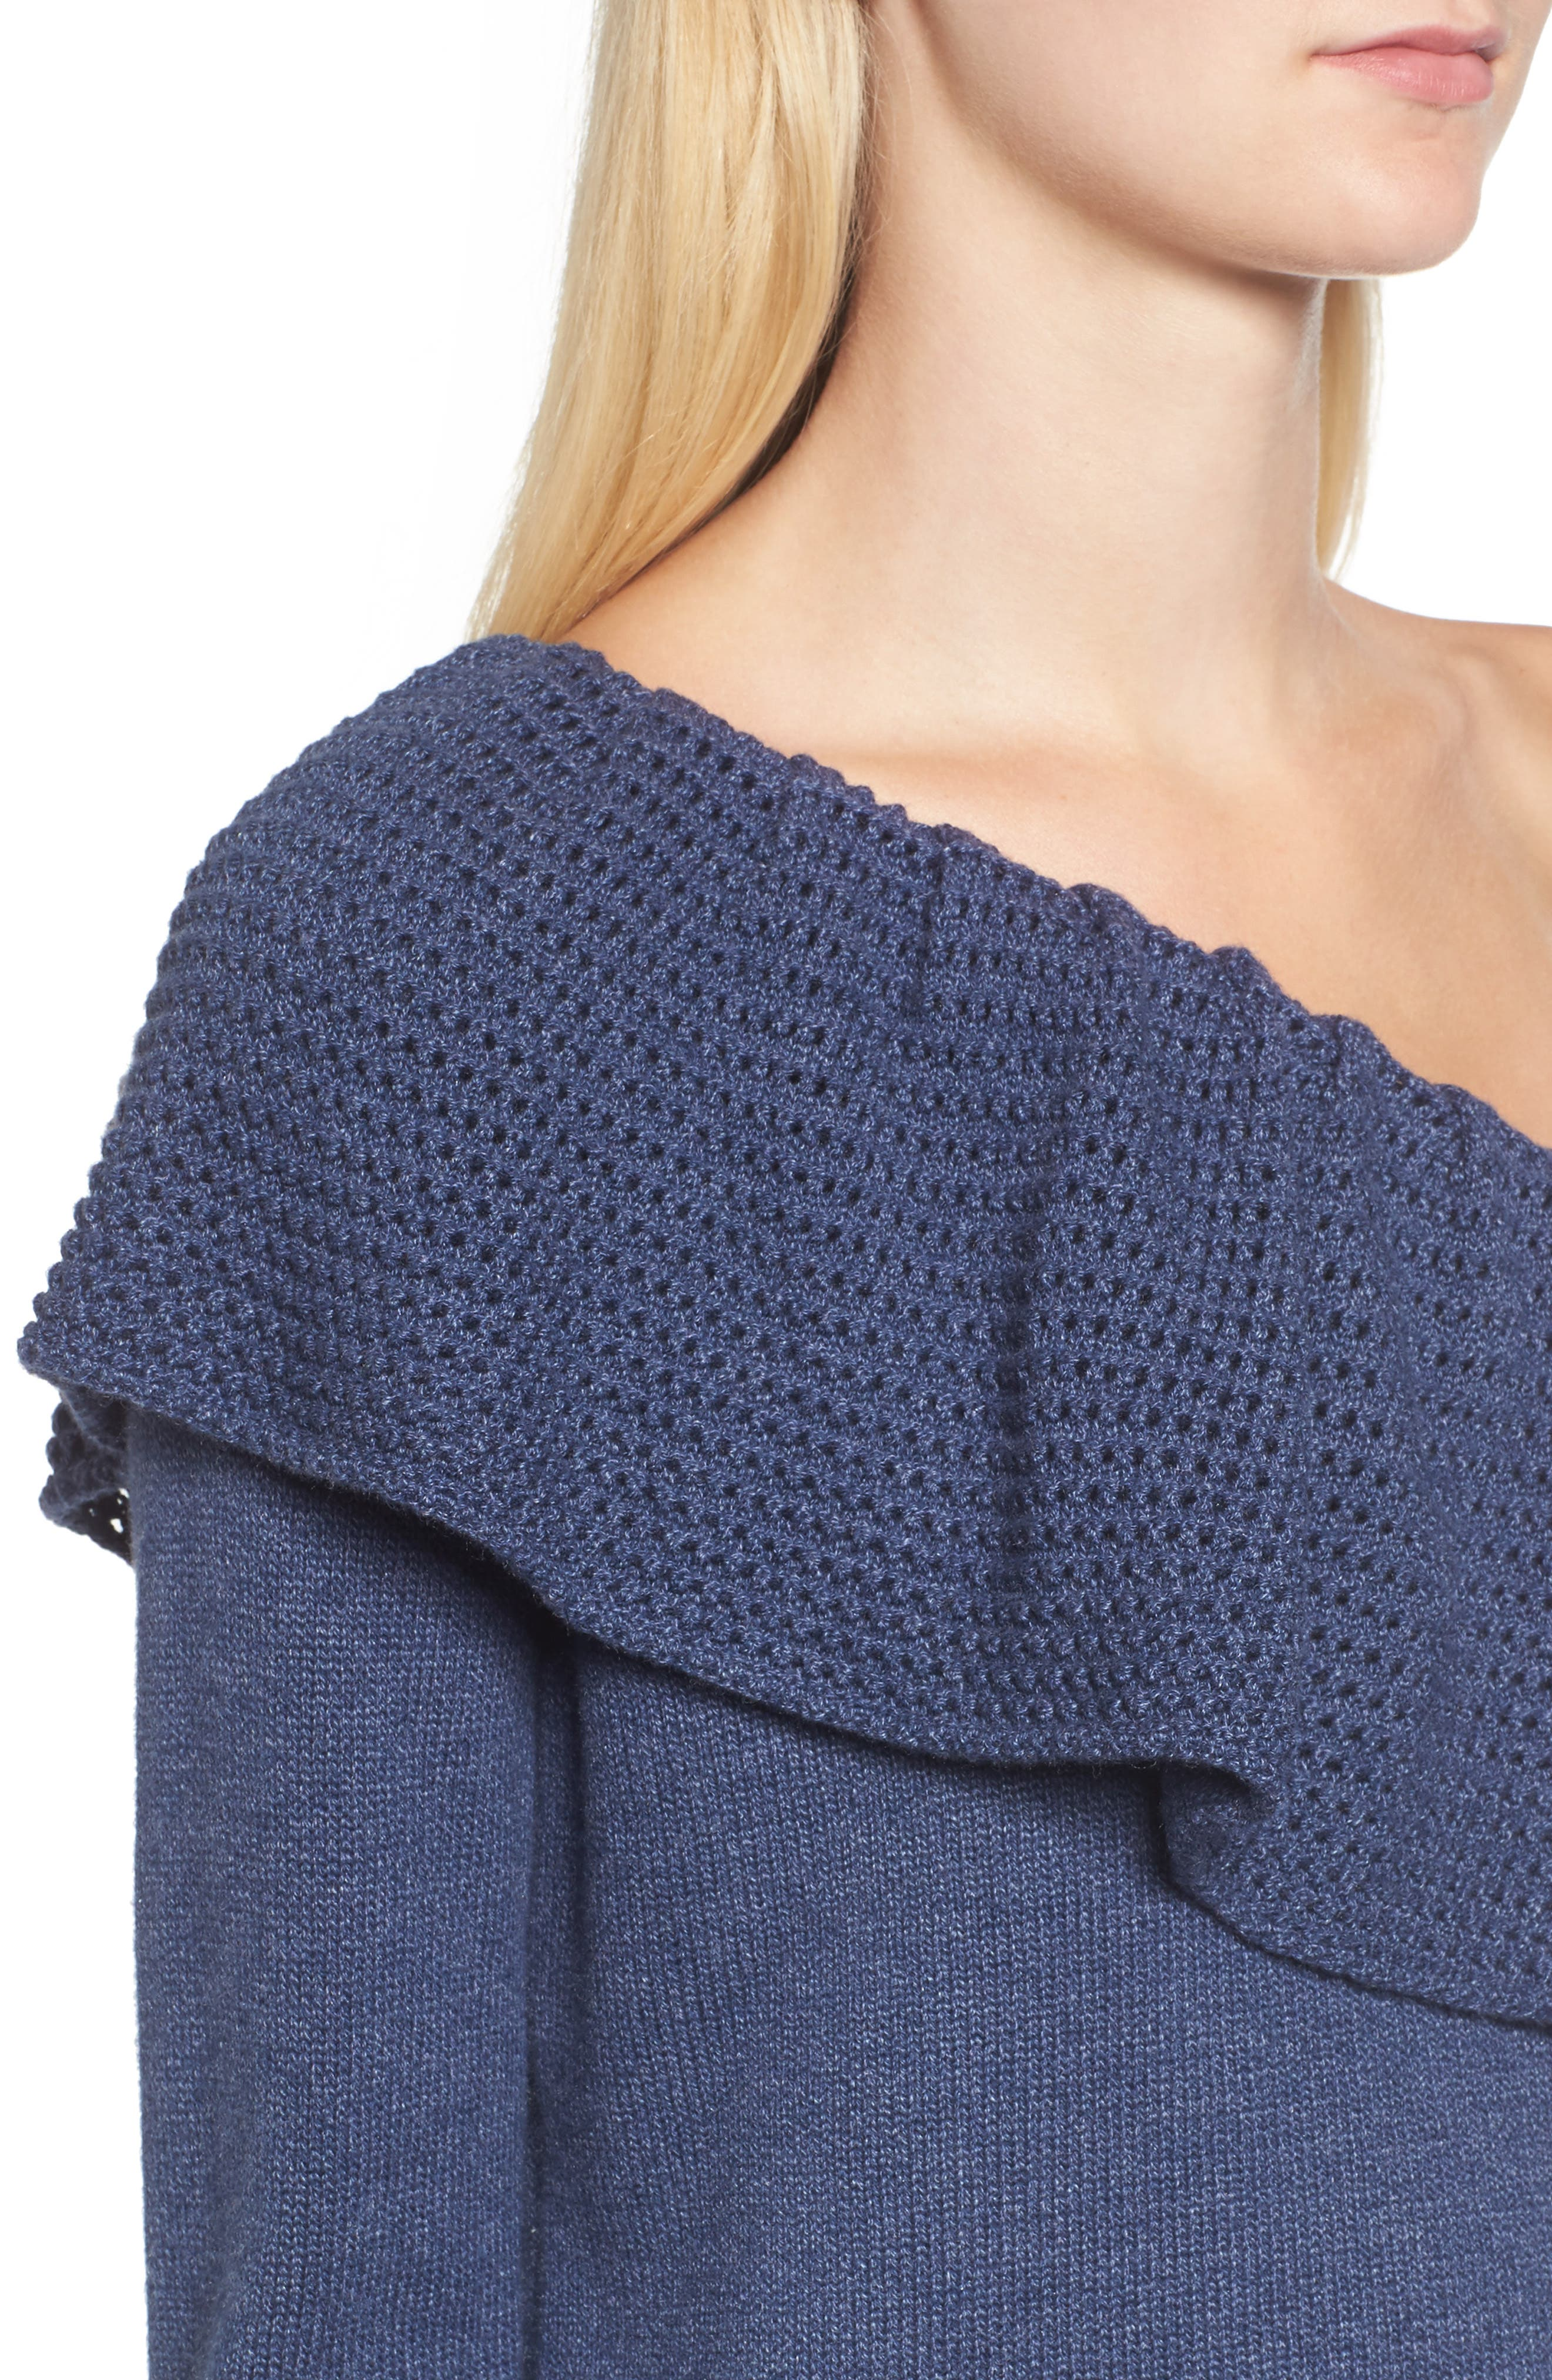 Ruffle One Shoulder Sweater,                             Alternate thumbnail 4, color,                             439